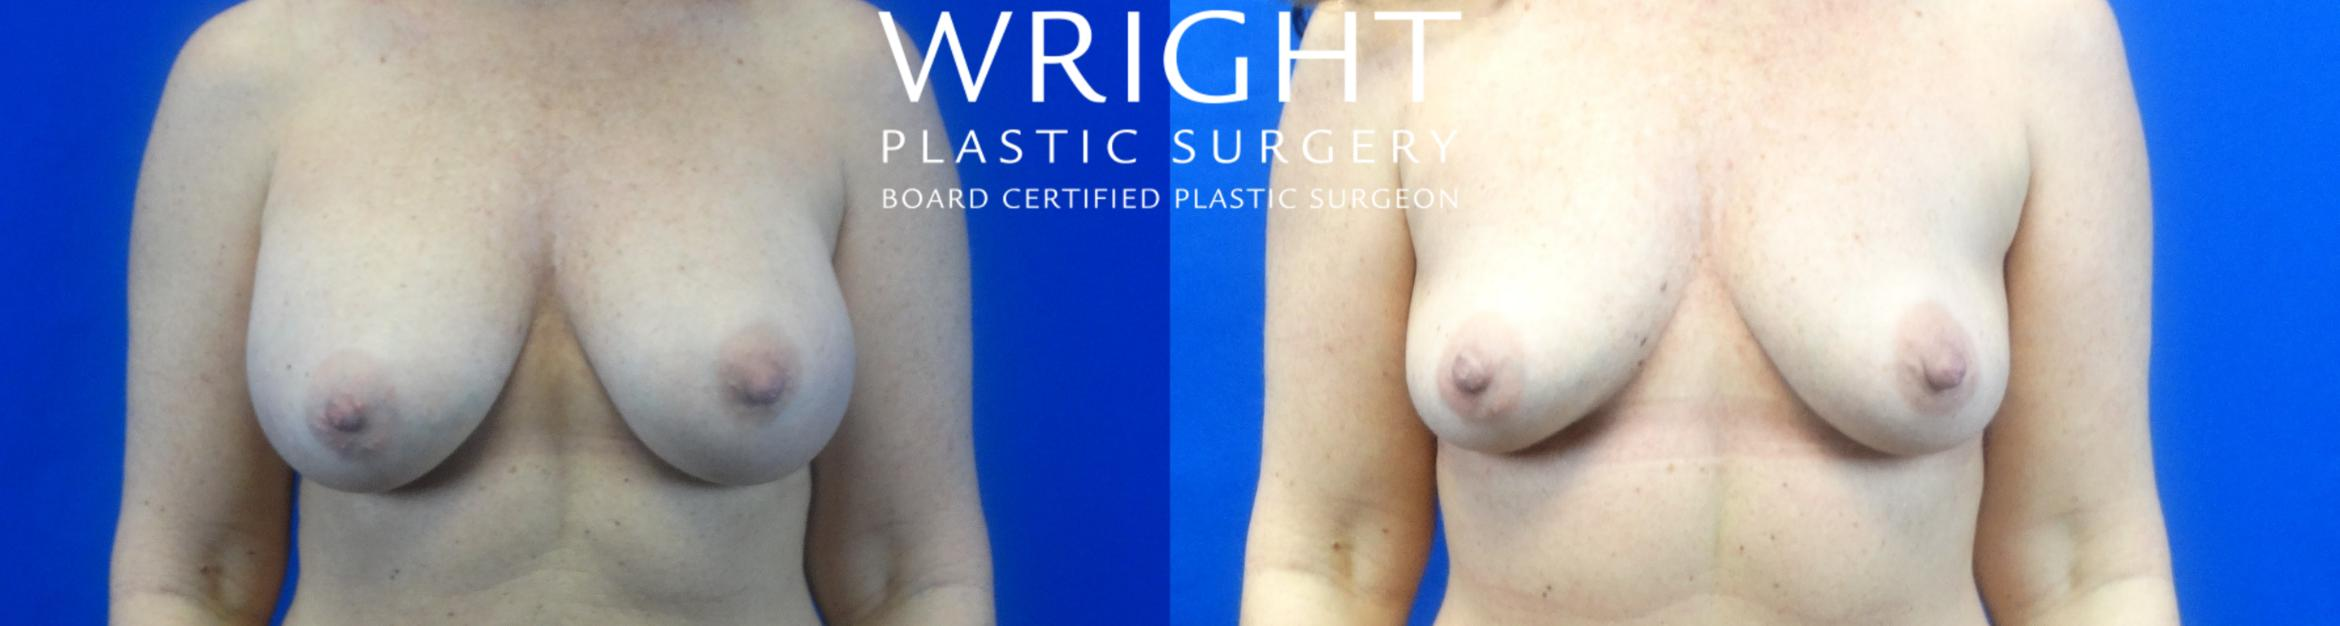 Breast Implant Removal Case 10 Before & After Front | Little Rock, Arkansas | Dr. Wright Plastic Surgery